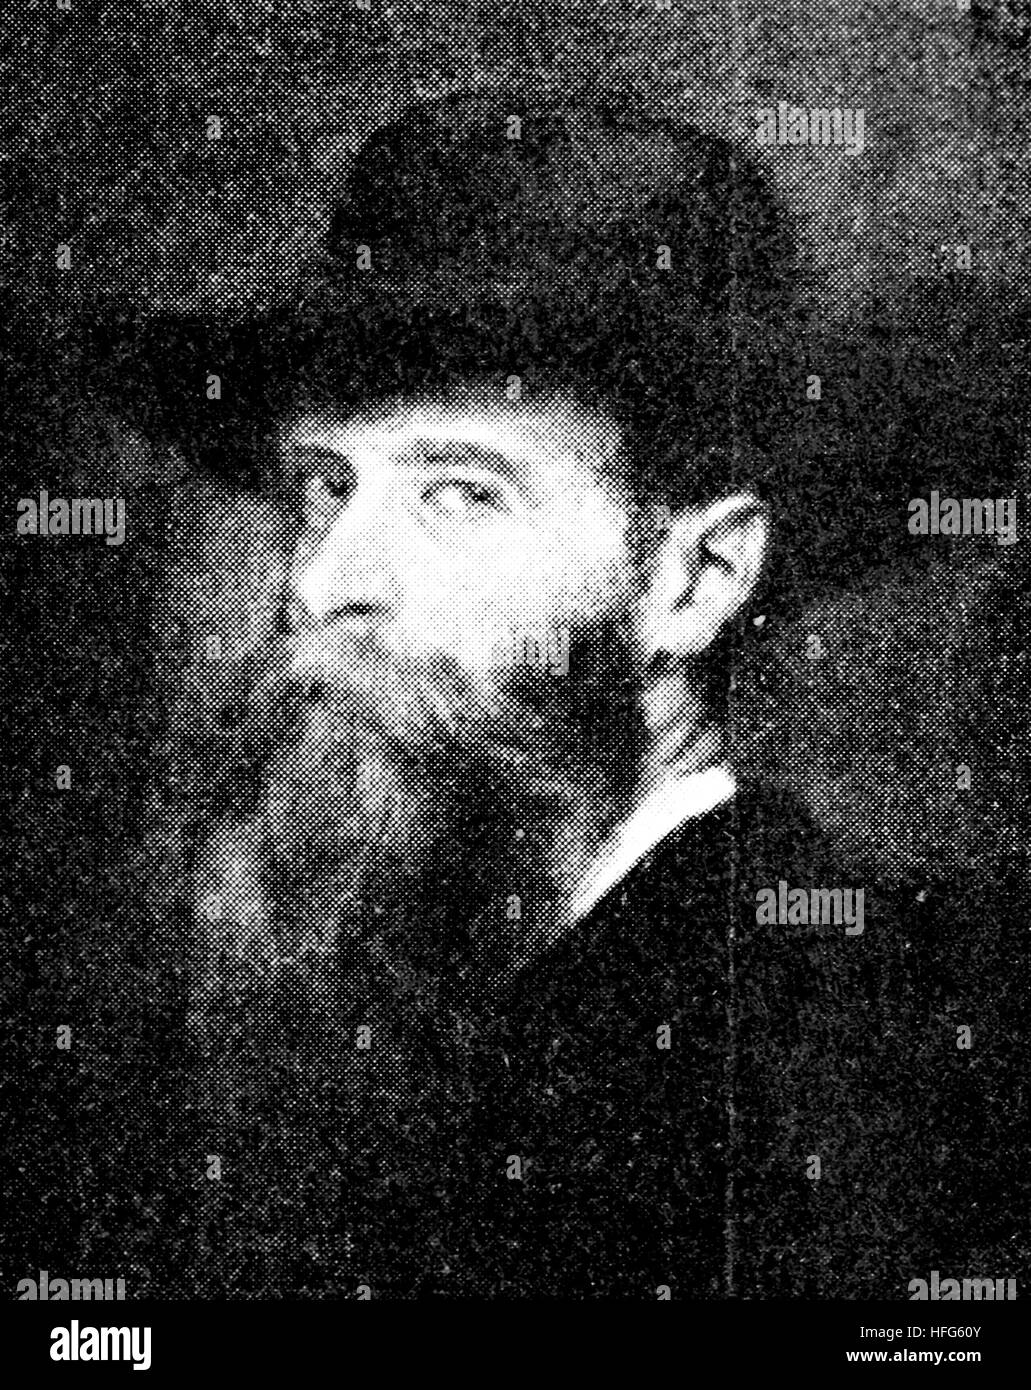 Ignaz Bruell, 1846 - 1907, was a Moravian-born pianist and composer who lived and worked in Vienna, reproduction - Stock Image